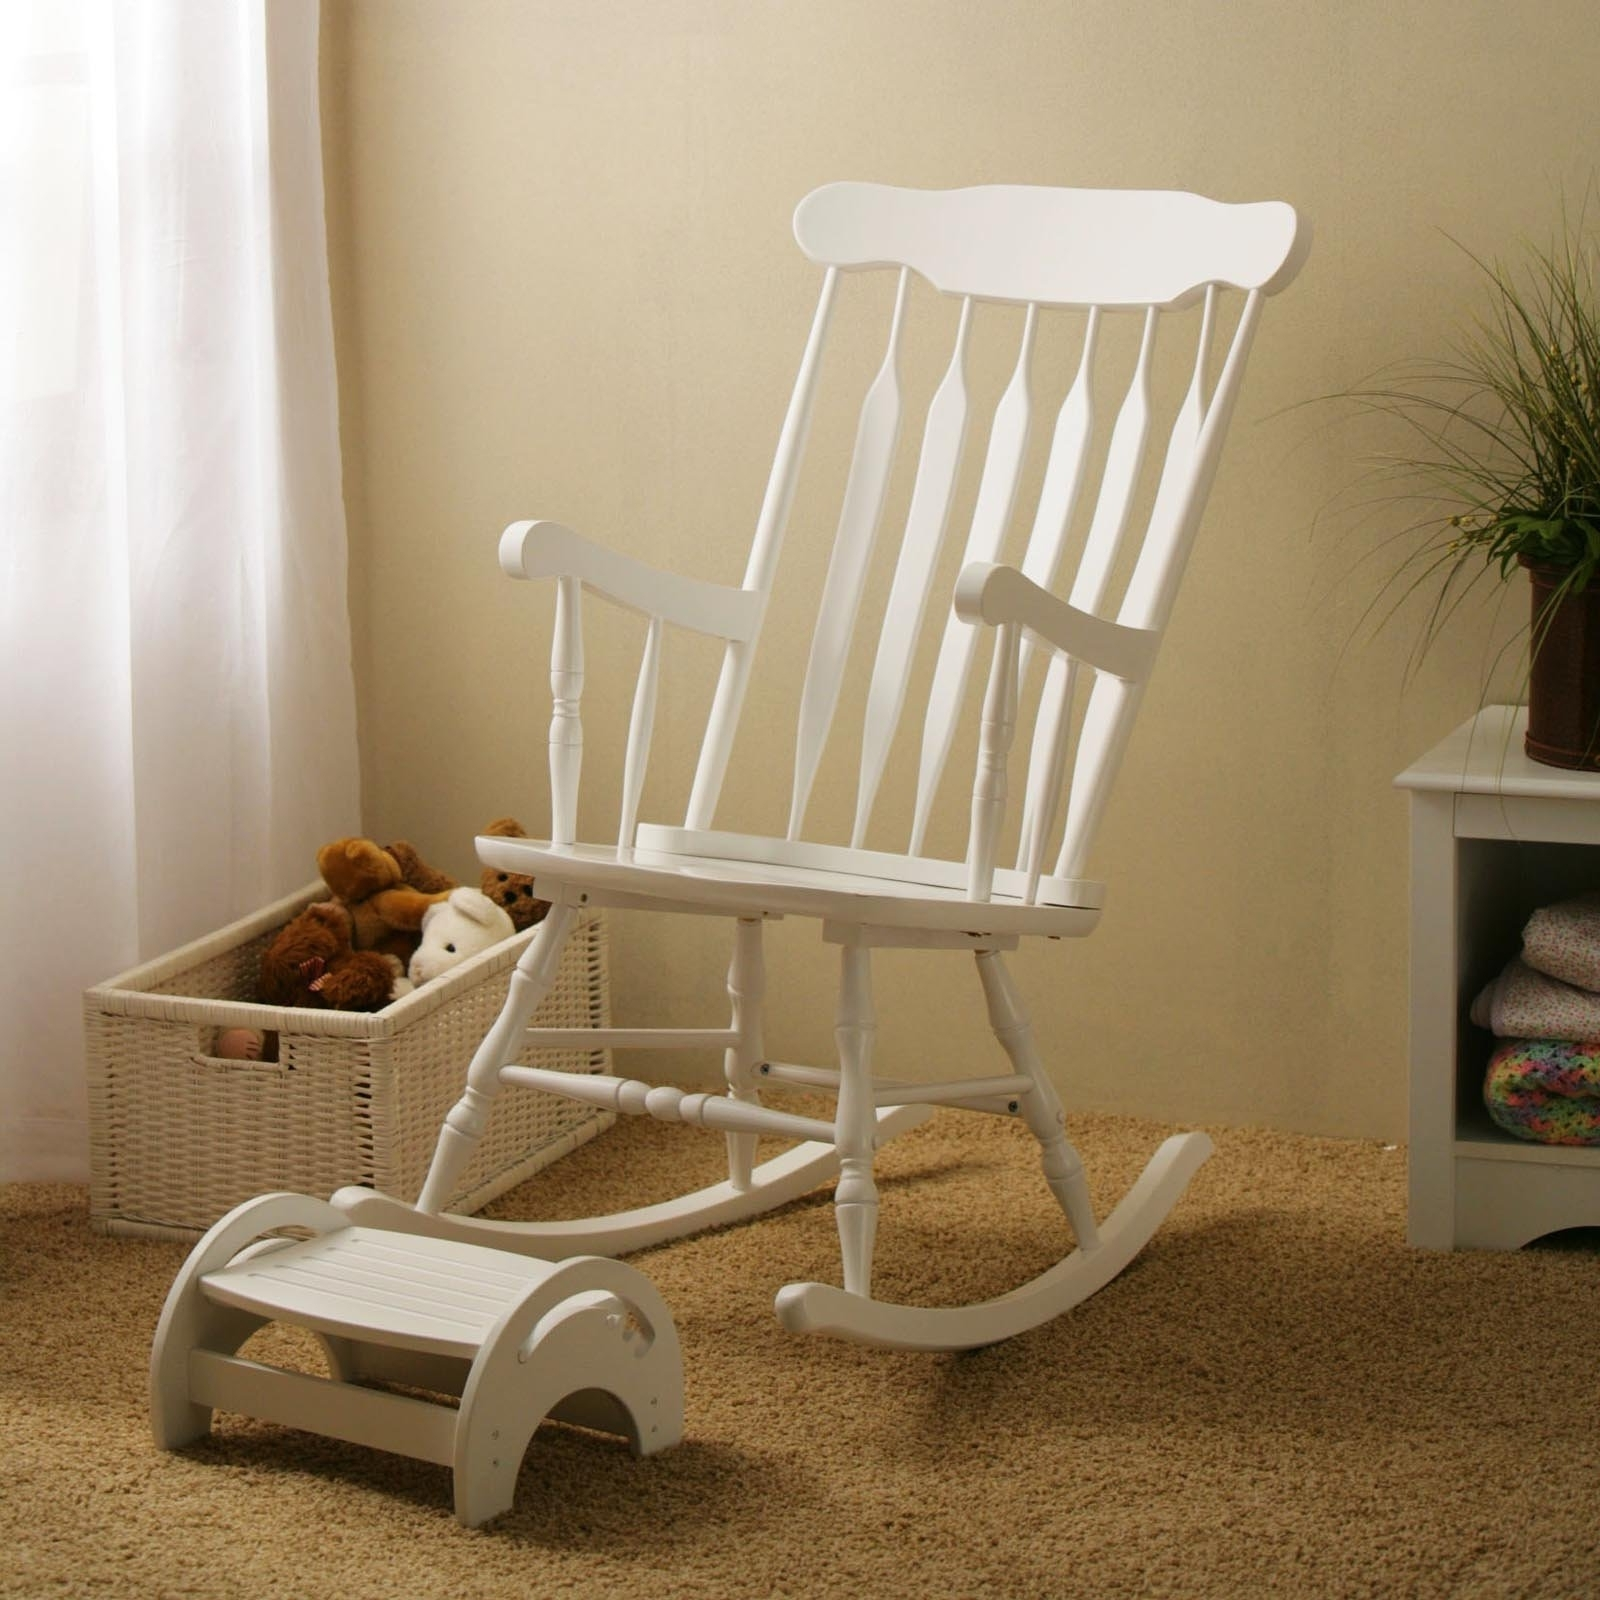 Nursery Rocking Chair Costco – Nursery Rocking Chair To Help Comfort With Best And Newest Rocking Chairs For Adults (View 8 of 20)